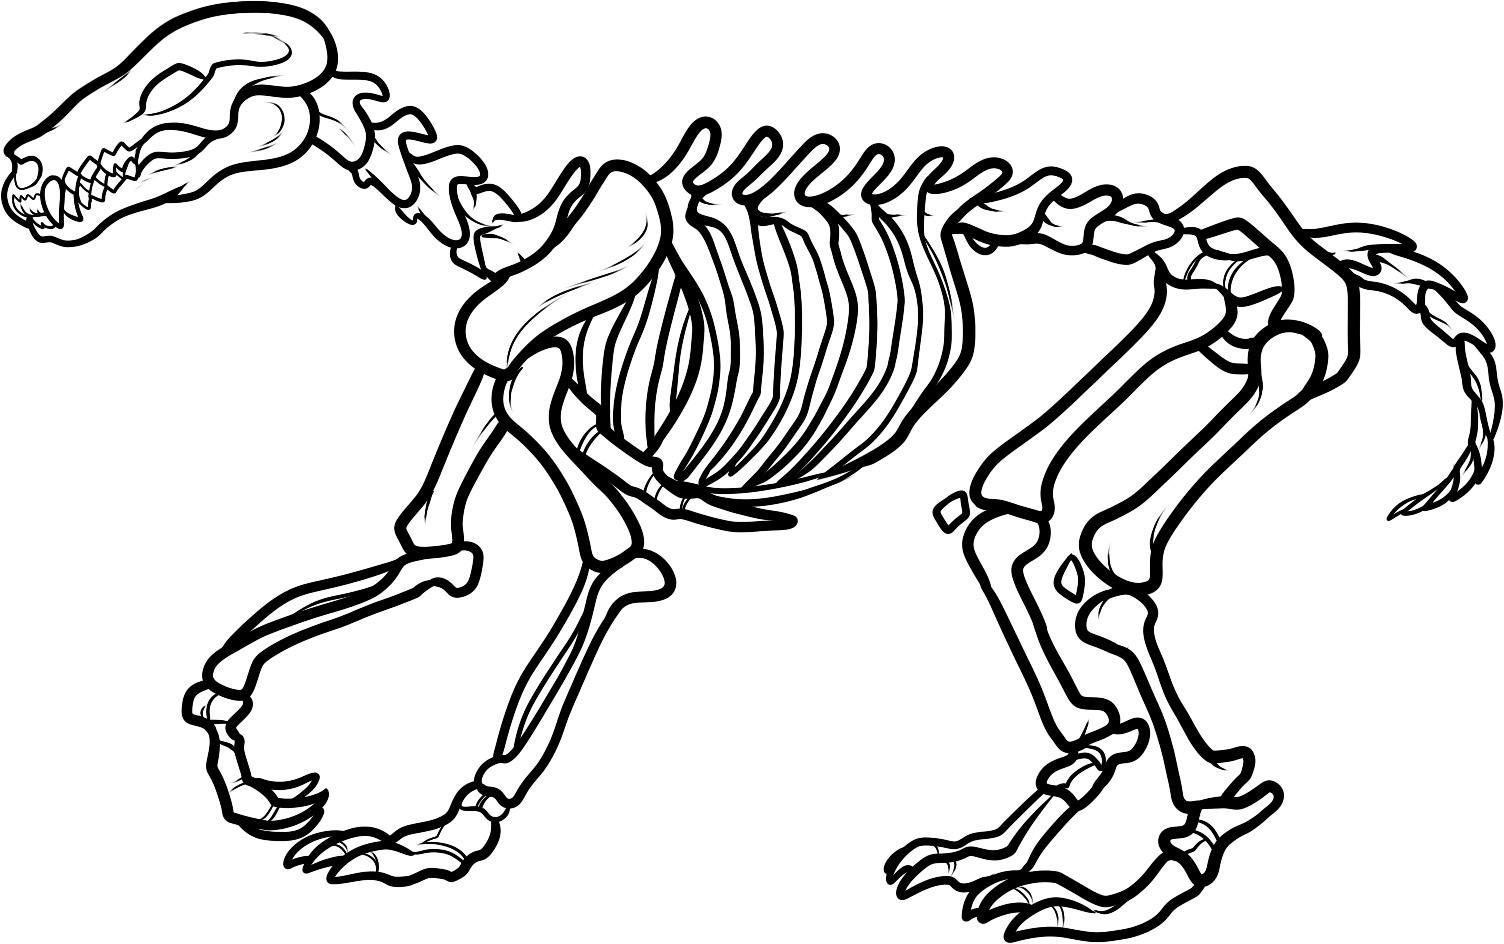 Dinosaur fossils panda free. Fossil clipart dino fossil jpg royalty free download